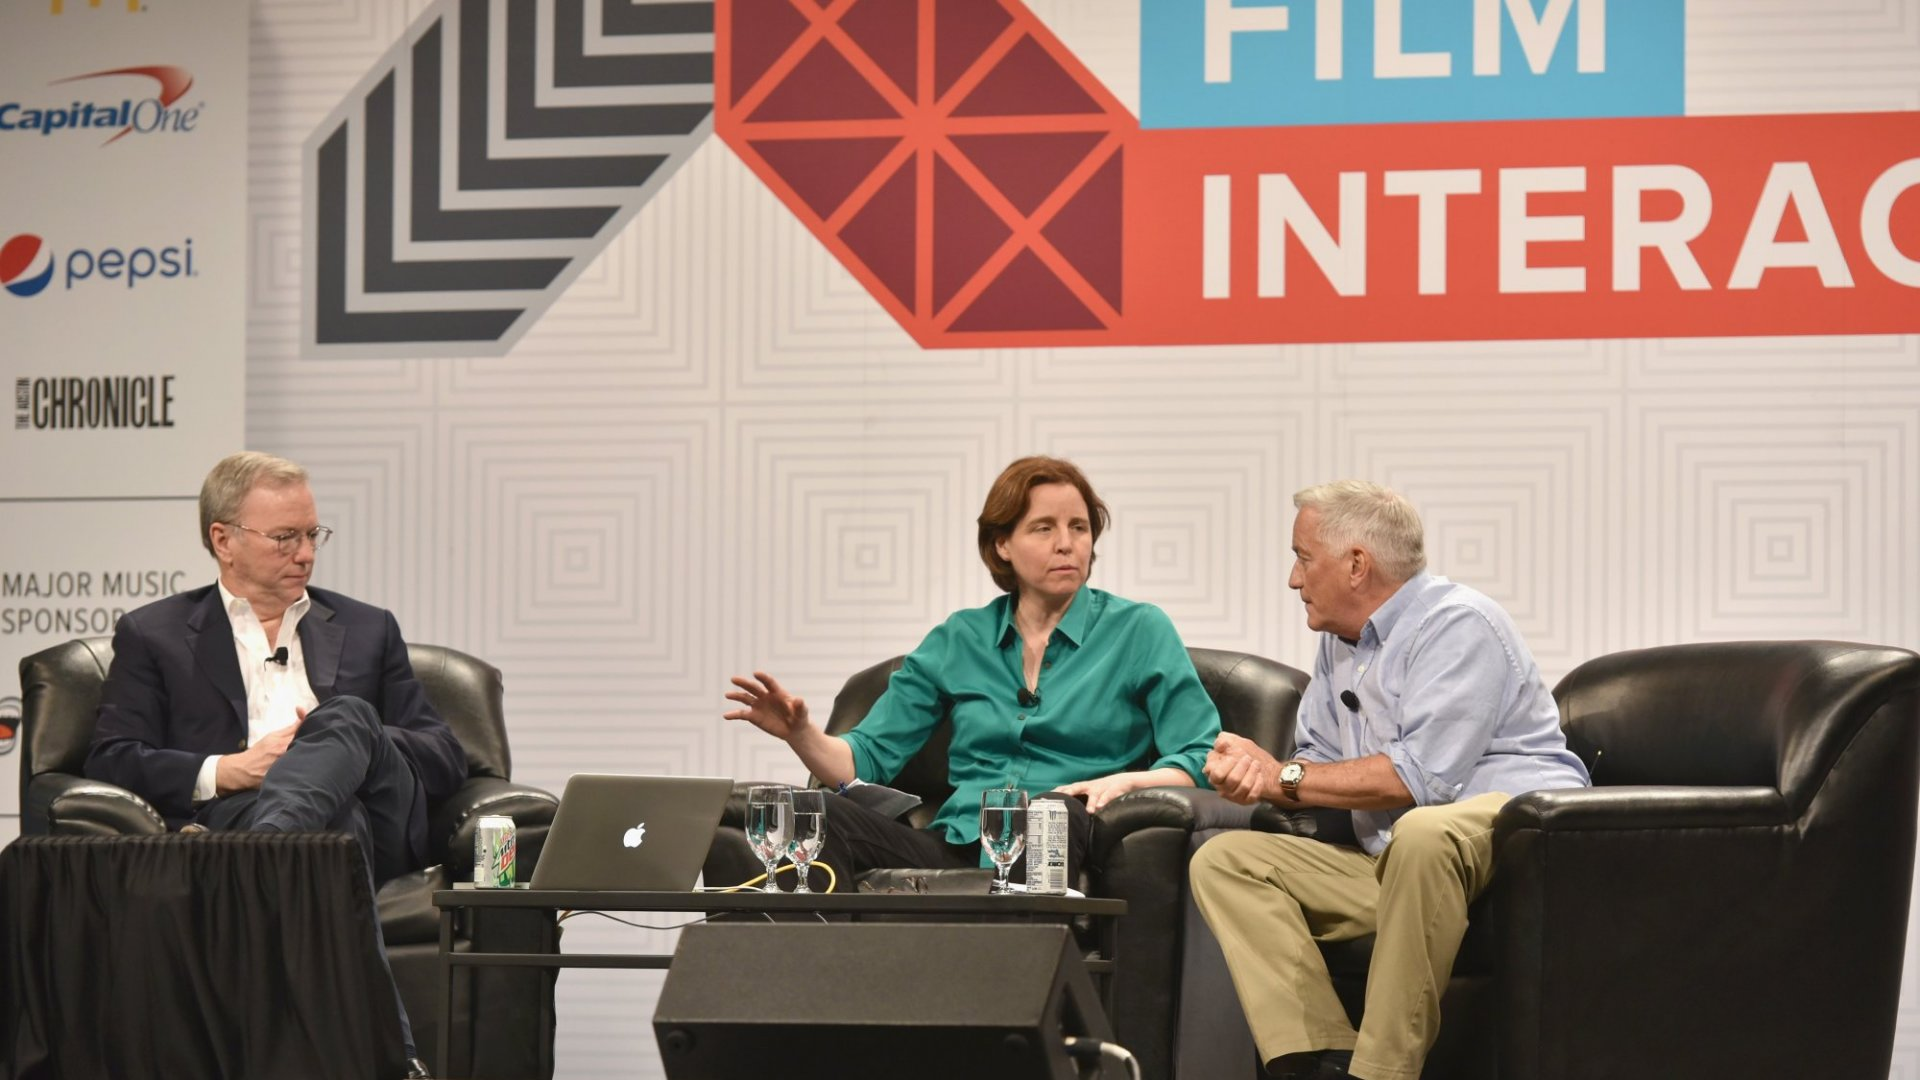 "Eric Schmidt, left, executive chairman of Google; Megan Smith, center, United States CTO in the Office of Science and Technology Policy; and Walter Isaacson, right, president and CEO of The Aspen Institute, speak onstage at ""How Innovation Happens"" on March 16 during the 2015 SXSW Music, Film + Interactive Festival in Austin, Texas. Schmidt faced some criticism for interrupting Smith during the talk. (Photo by Amy E. Price/Getty Images for SXSW)"